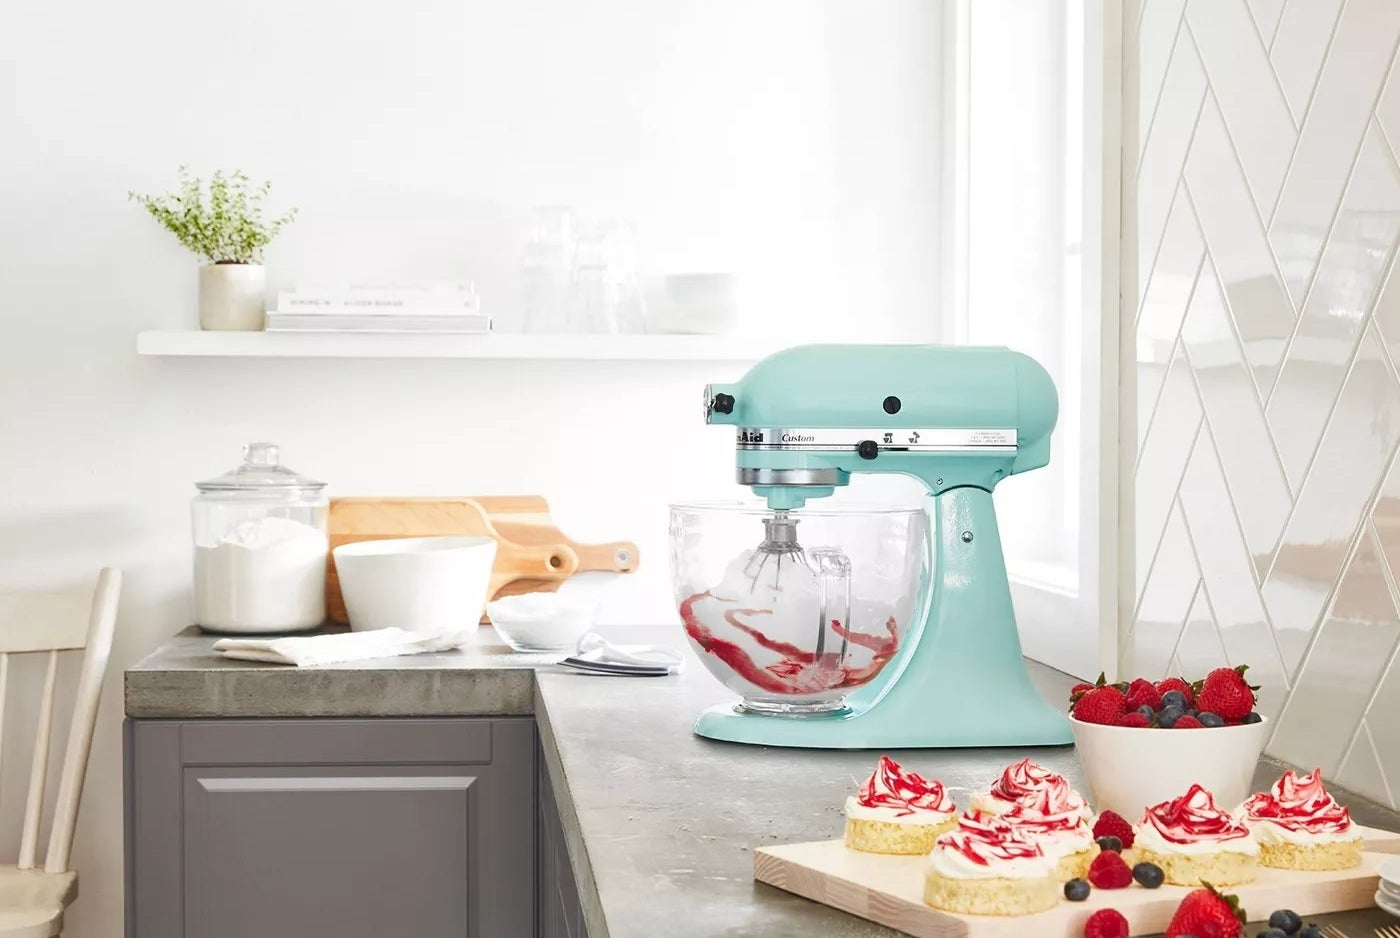 The ice-green, tilt-head Kitchenaid with a glass bowl that has measurement markings on the side